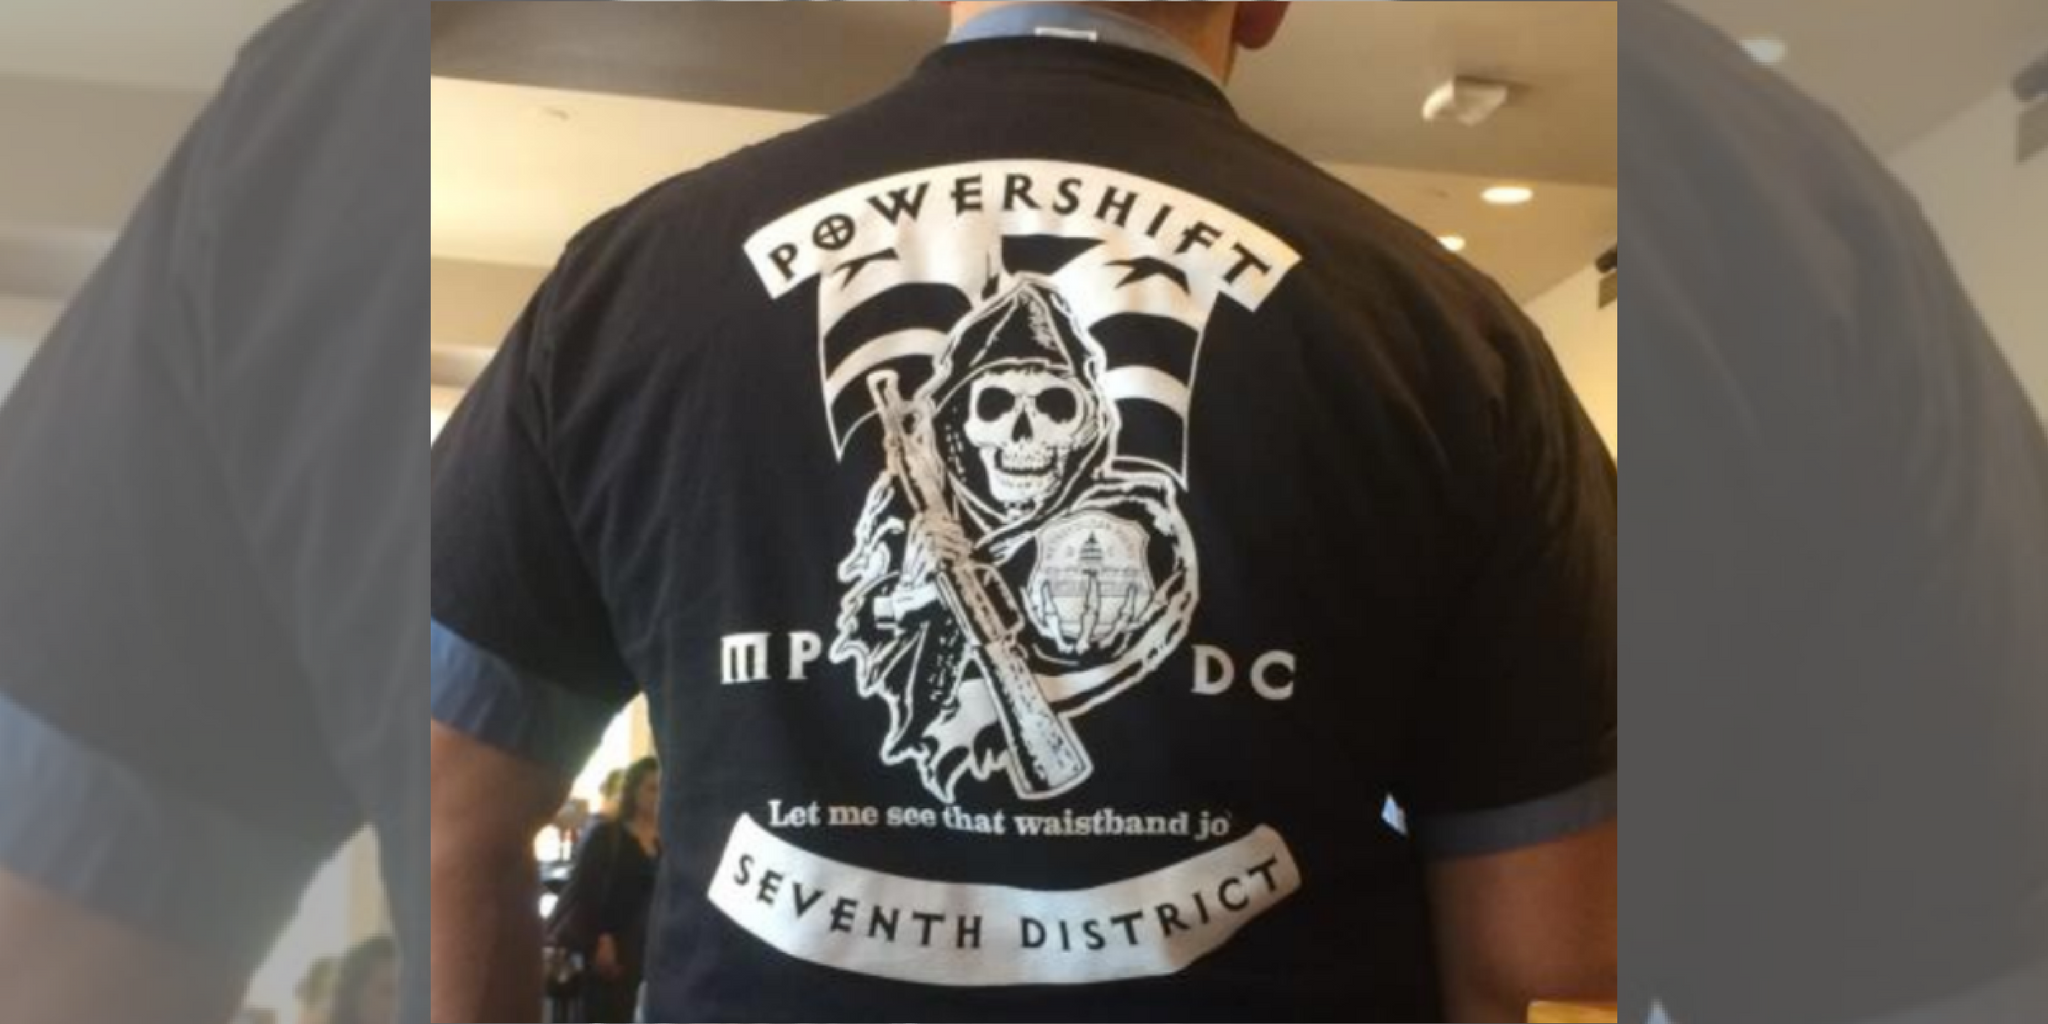 A Washington D.C. cop is accused of wearing a shirt with white supremacist and police brutality messages